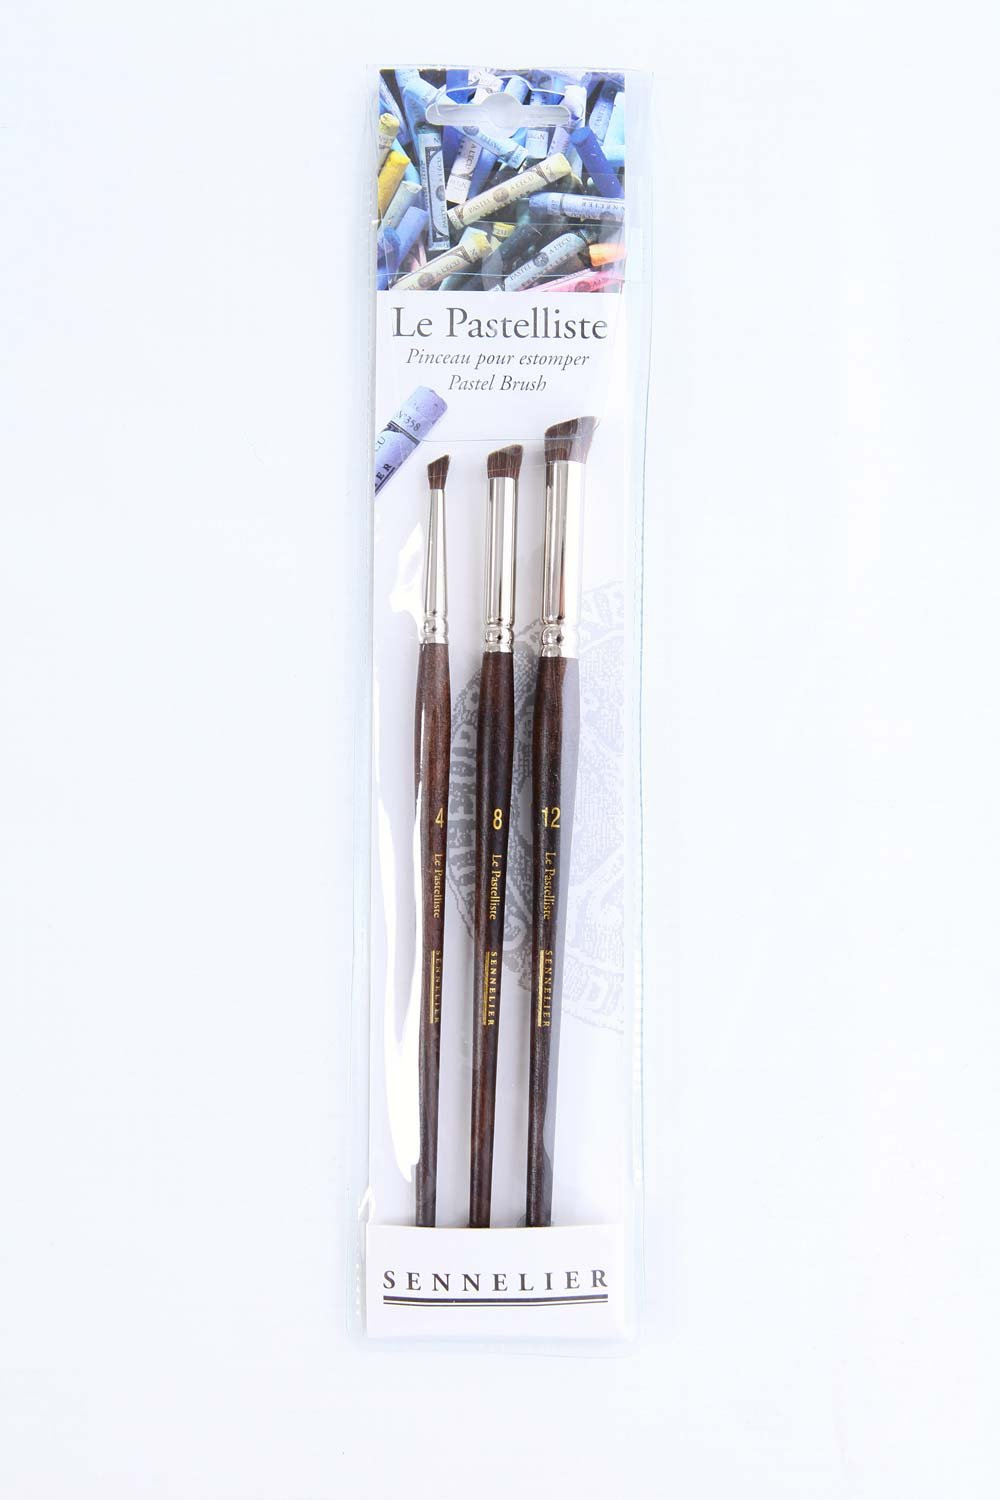 Sennelier Le Pastelliste Pastel Brush Set 3Pc